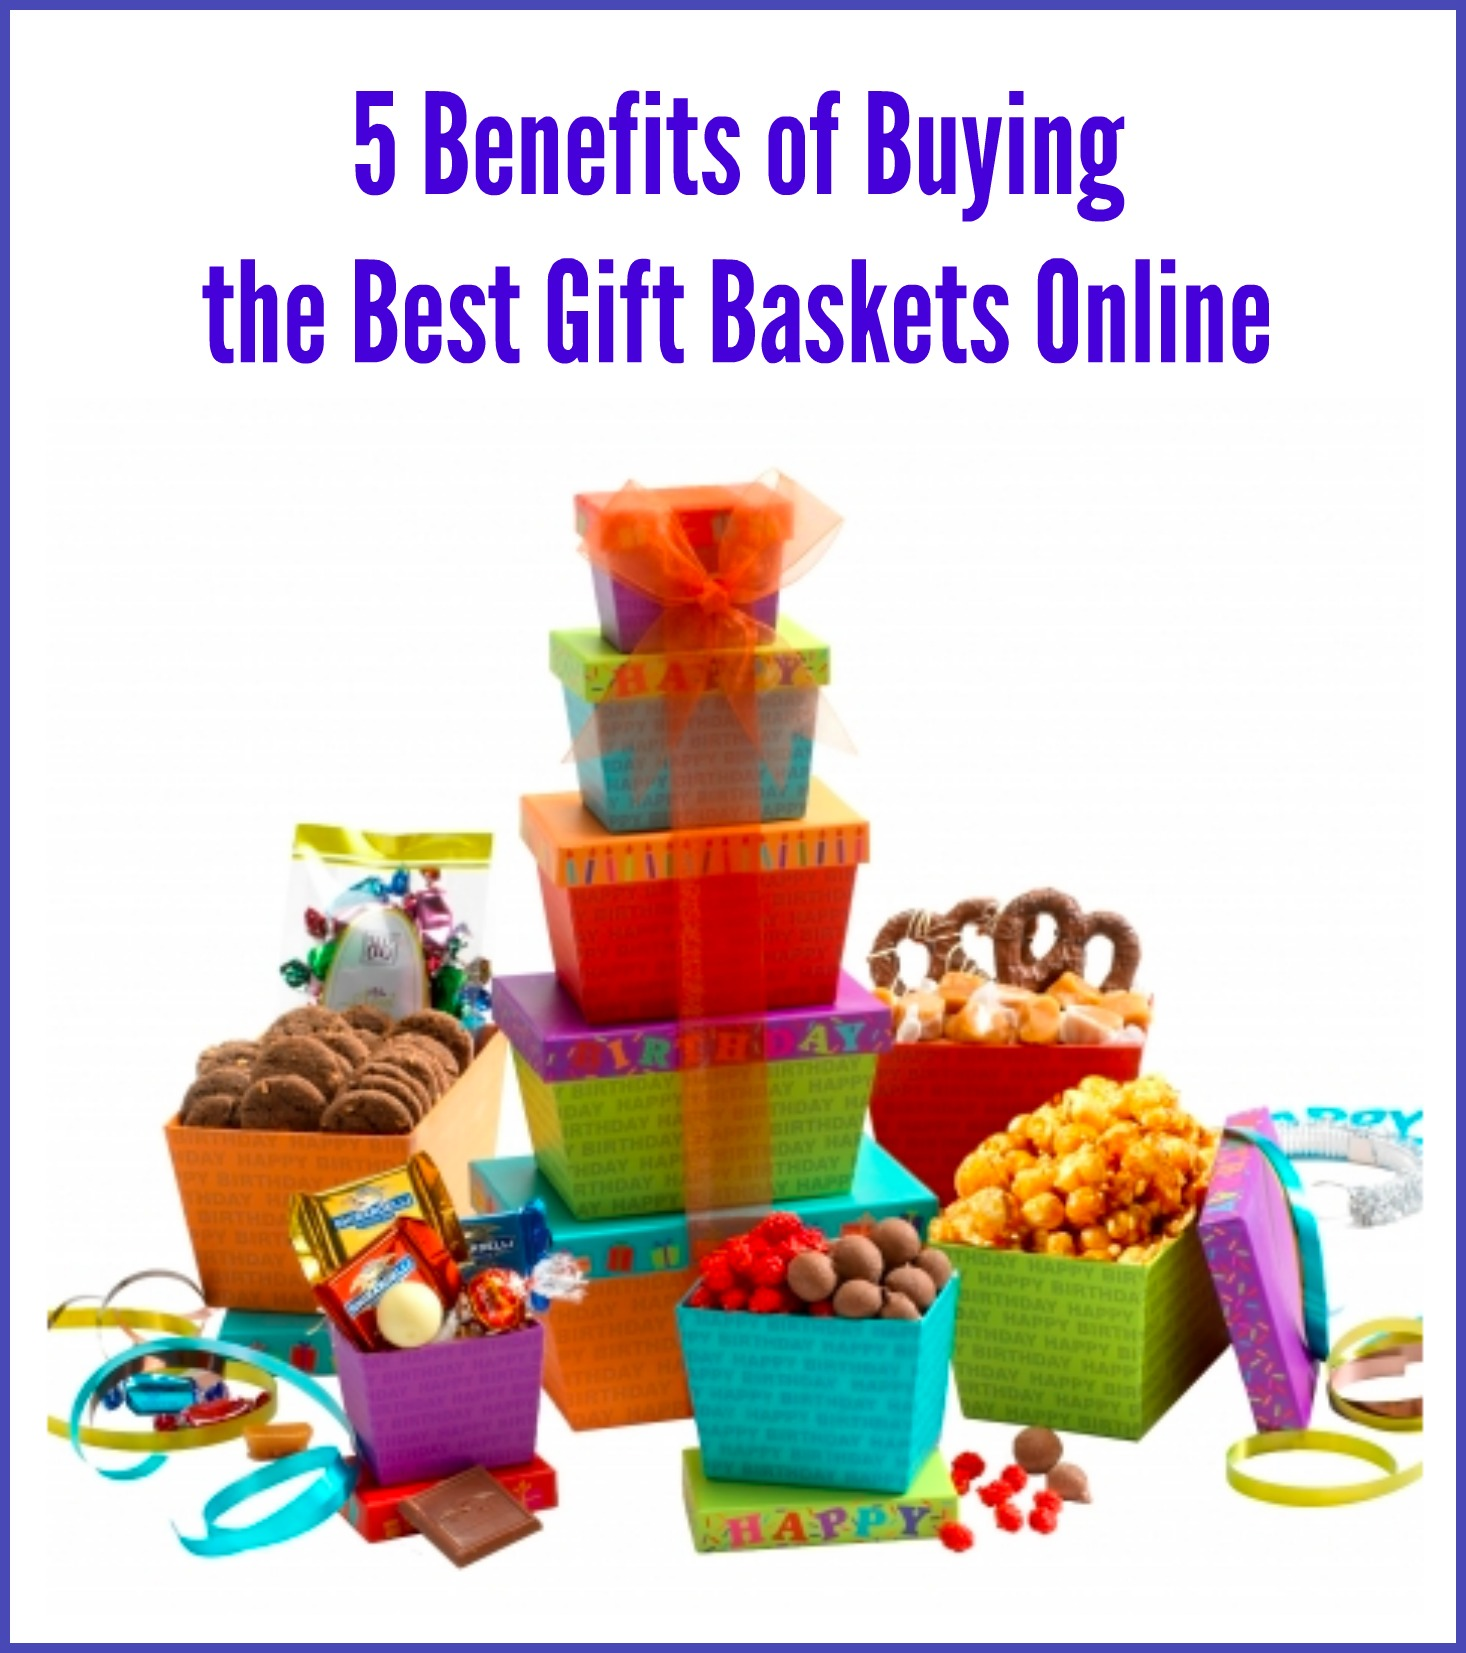 5 Benefits of Buying the Best Gift Baskets Online